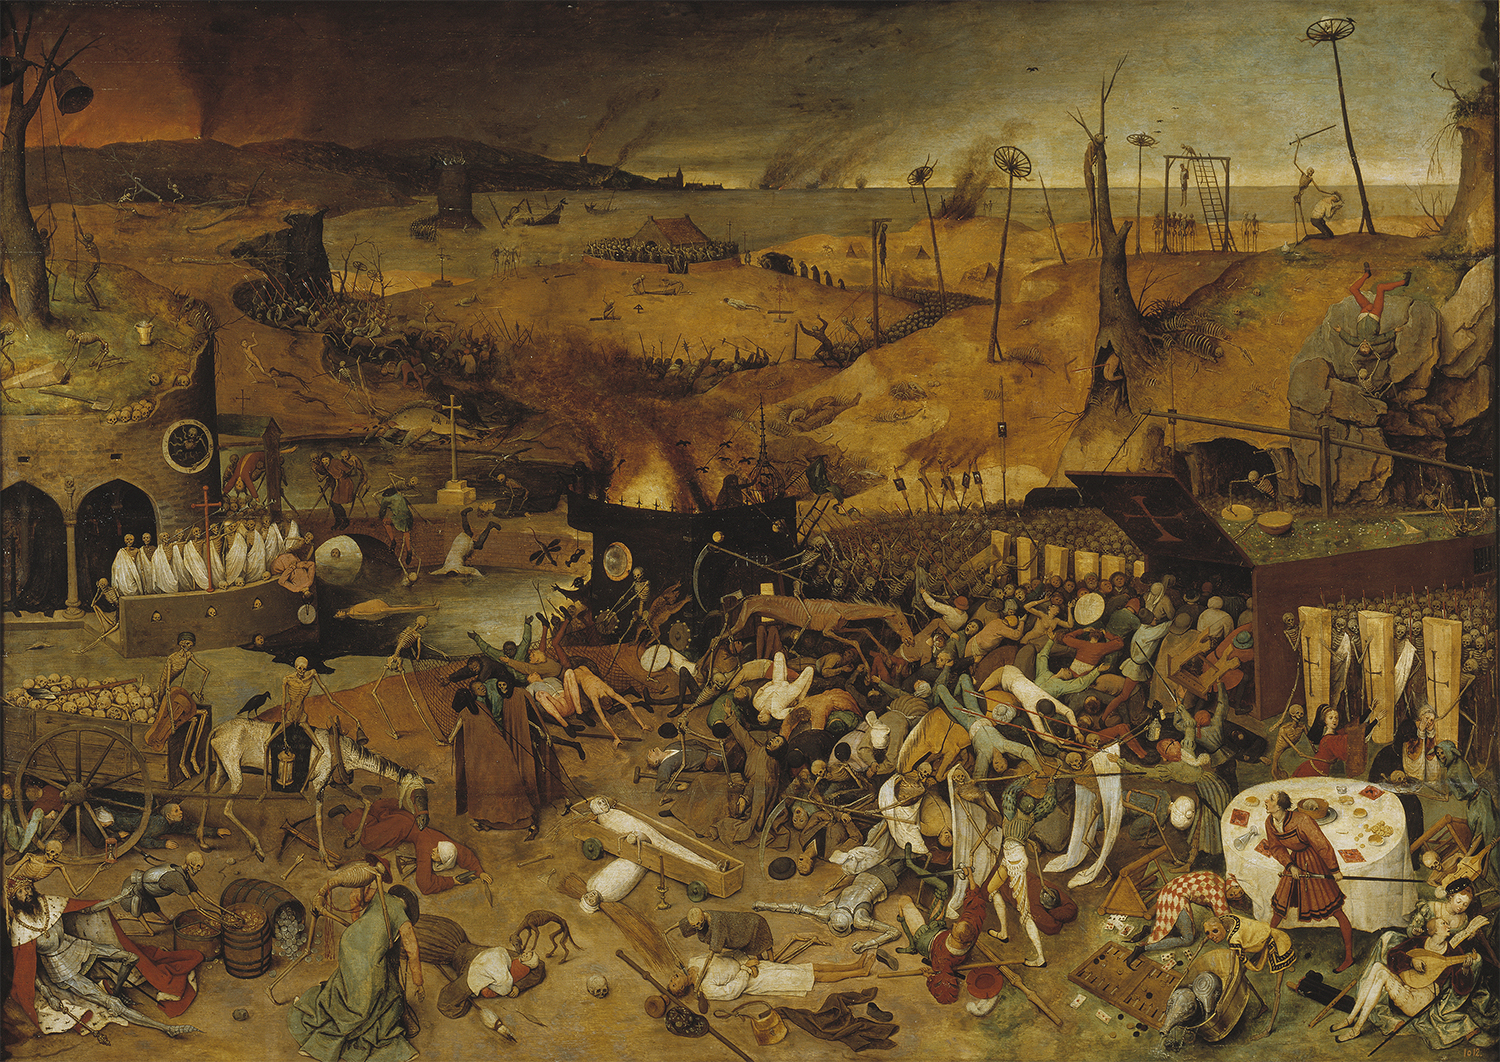 A scene from The Triumph of Death (1562), by Pieter Bruegel the Elder.